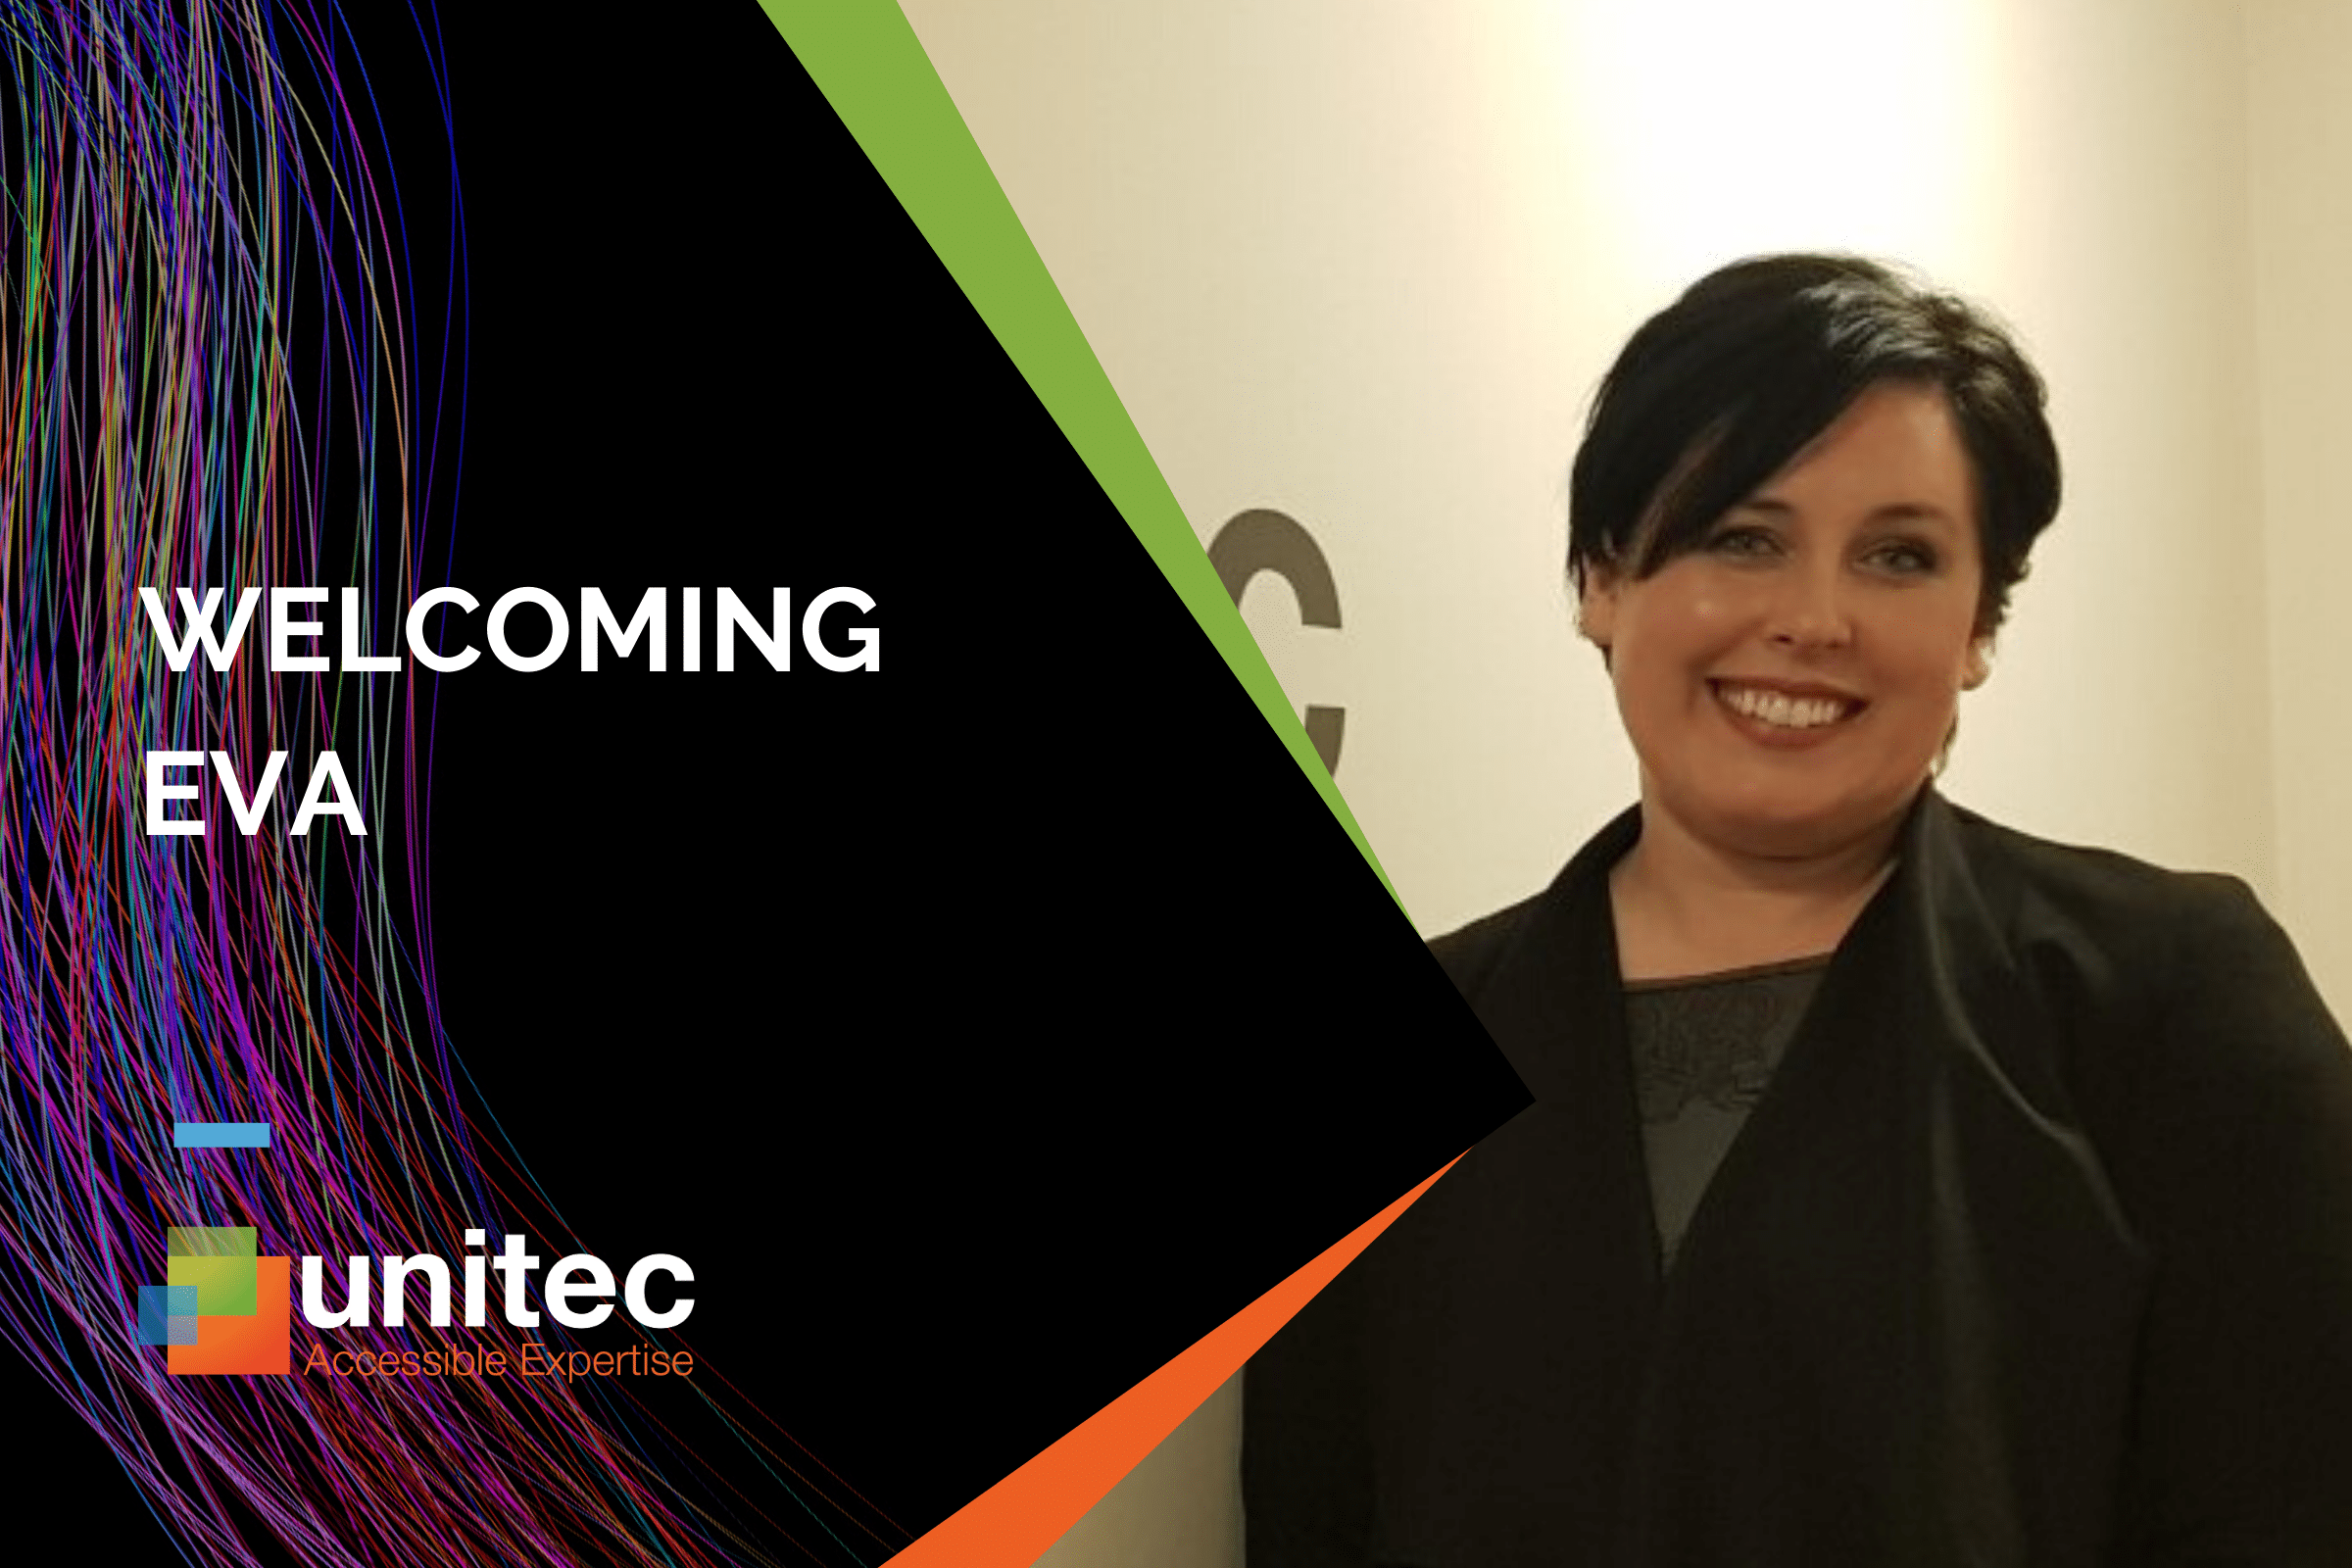 Welcoming Eva Hartigan to the Unitec Team